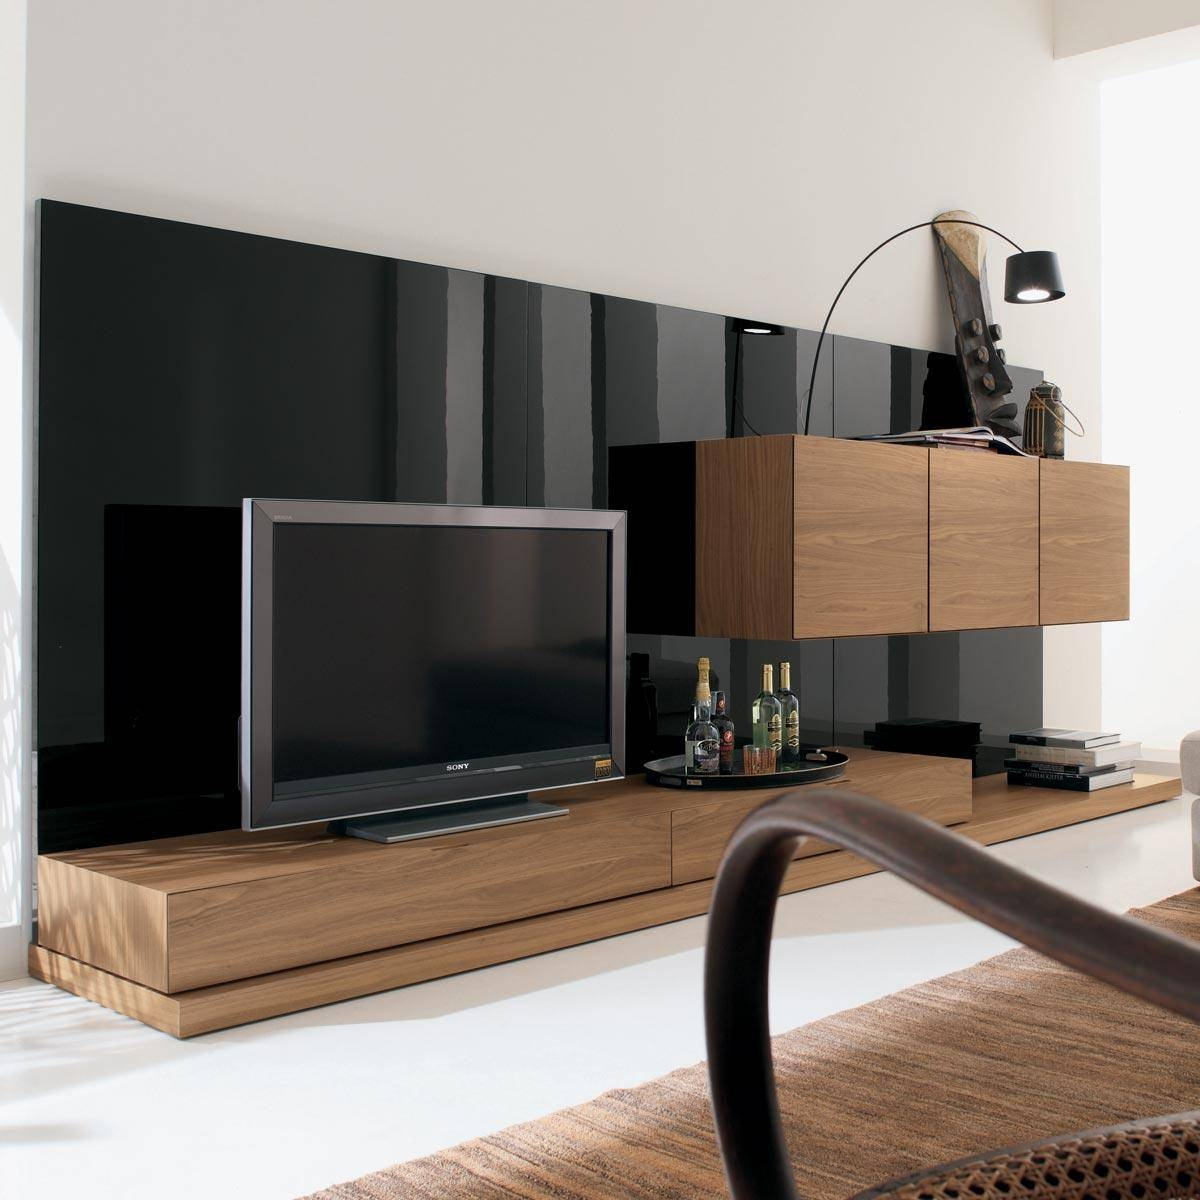 Furniture. The Best Collection Of Big Screen Tv Stands For Home throughout Modern Tv Cabinets (Image 10 of 15)